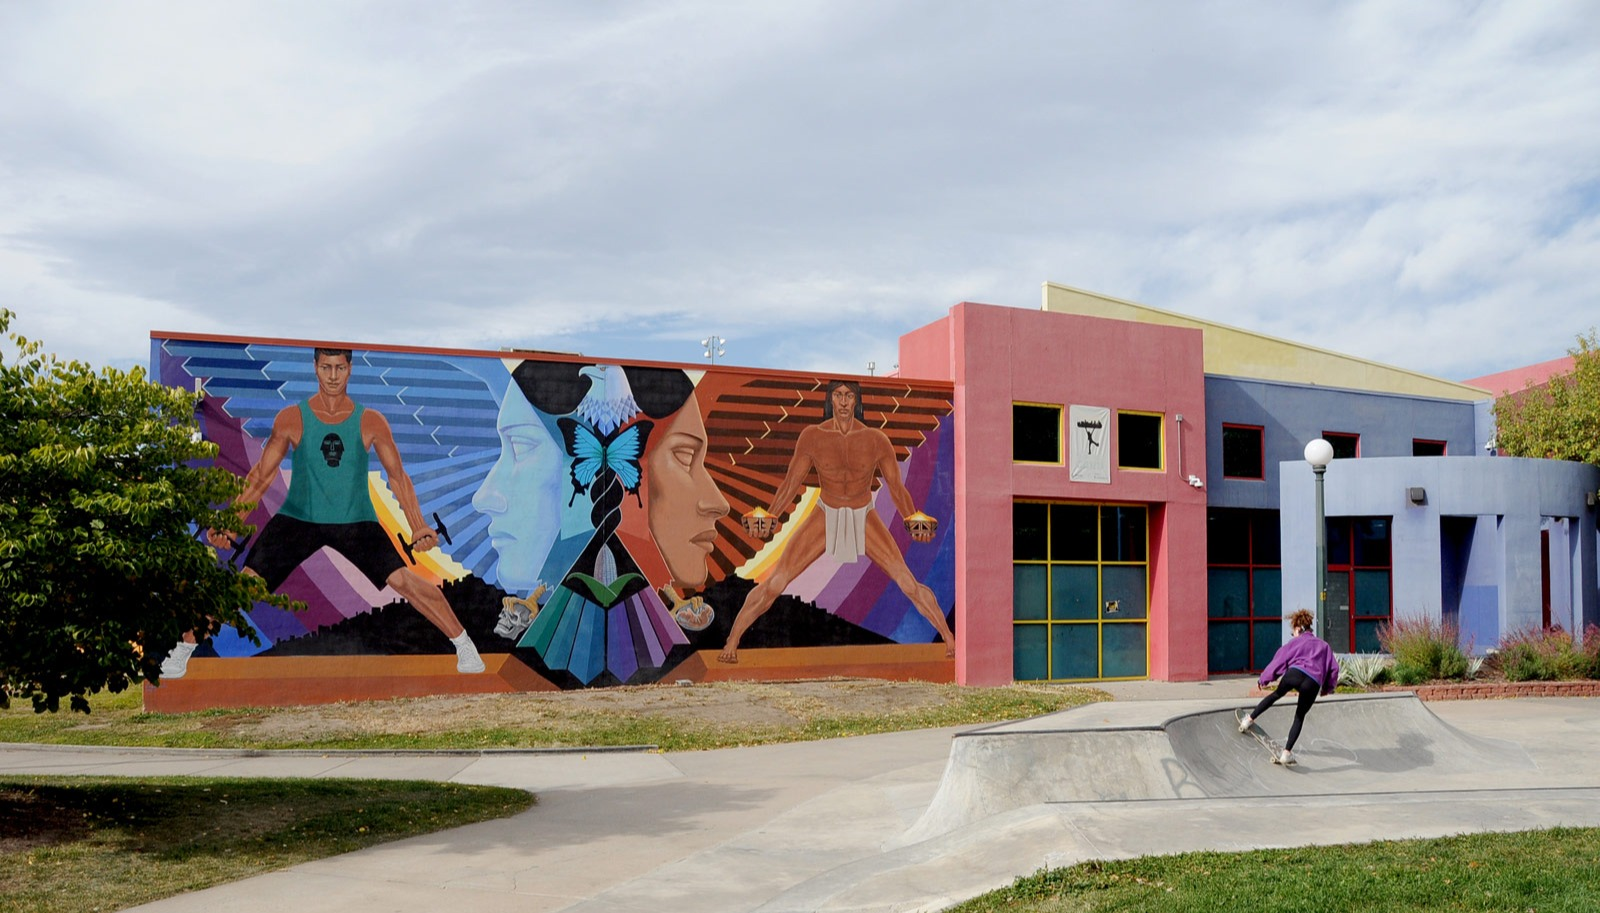 """La Alma"""" mural by Emanuel Martinez on the Recreation Center in La Alma Lincoln Park. The mural shows two outward faces flanked by two images of two figures standing wide legged. The mural shows a then and now story of the neighborhood."""